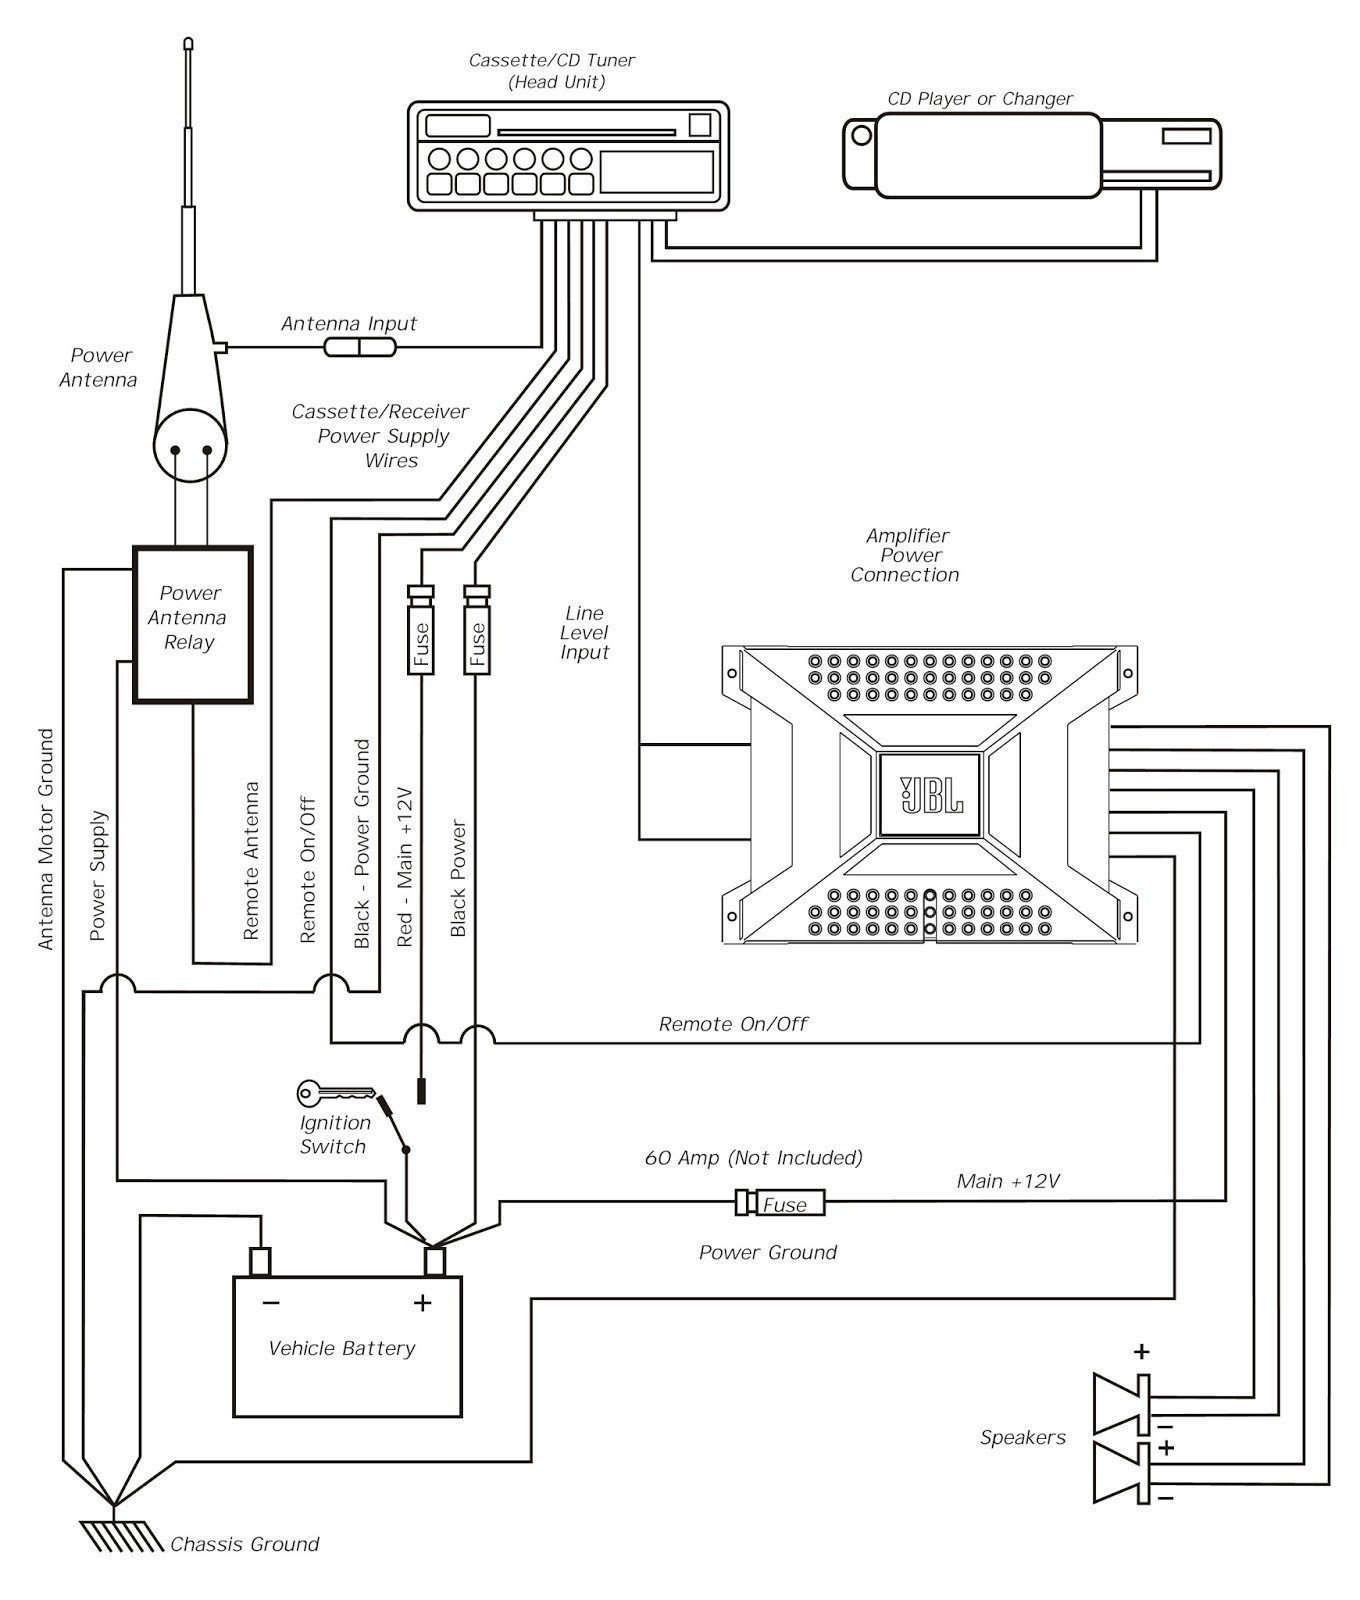 2006 Saturn Ion Engine Diagram 2003 Saturn Vue Stereo Wiring Diagram Shahsramblings Of 2006 Saturn Ion Engine Diagram